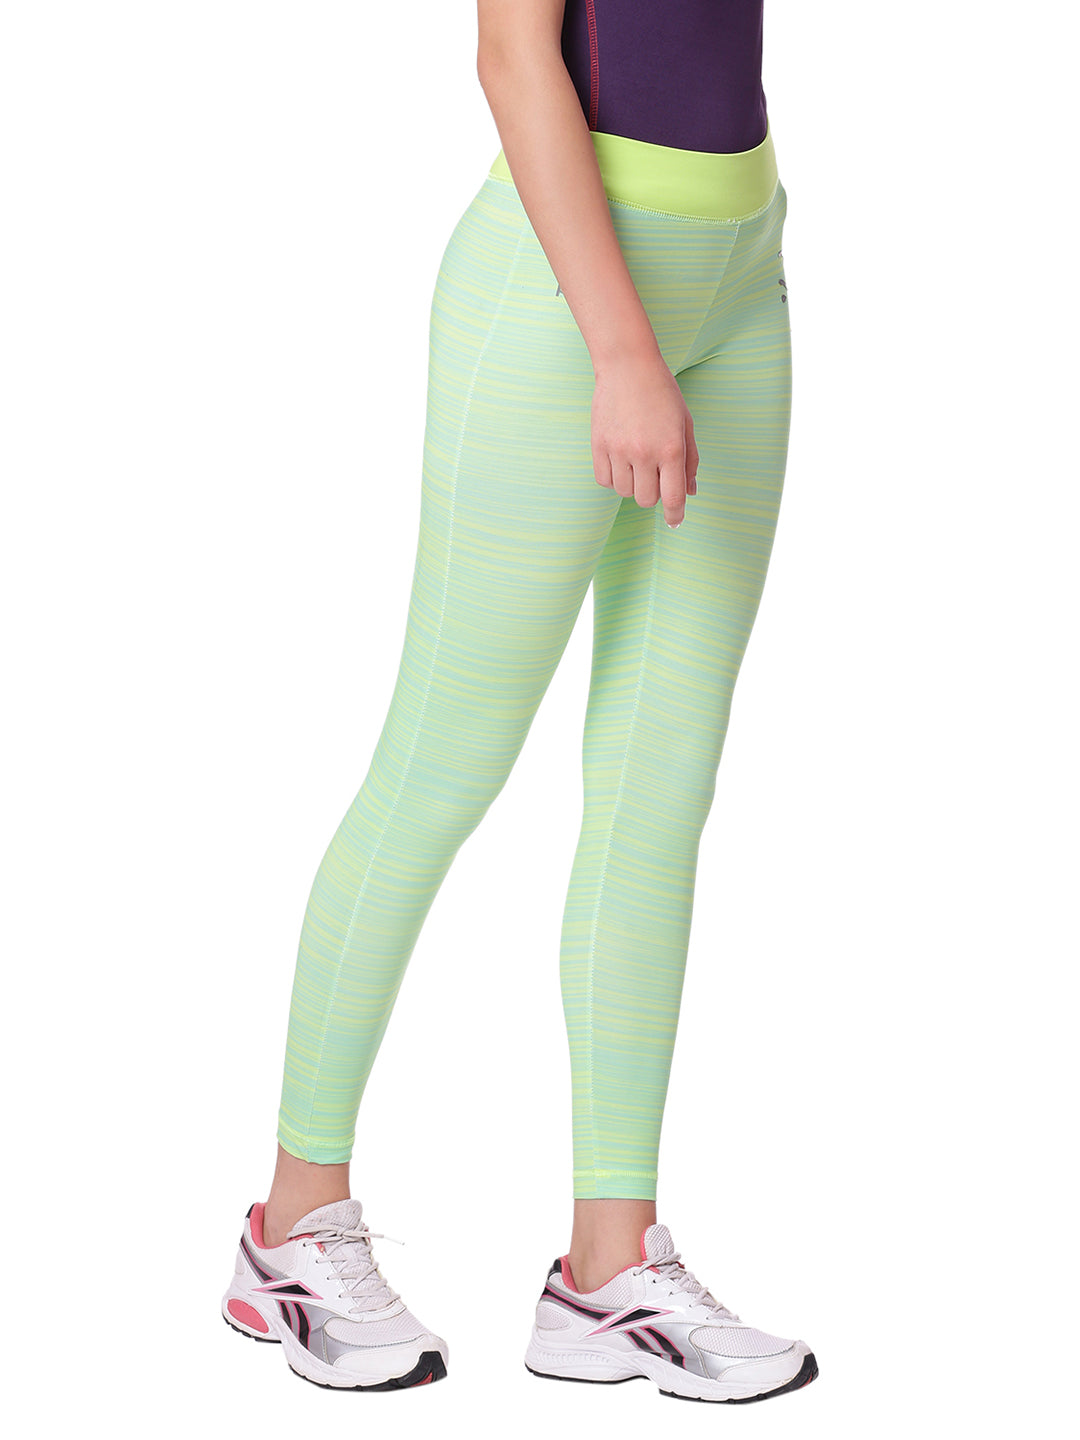 Piranha Women Green Striped Yoga And Running Pants Ankle Length - YP02